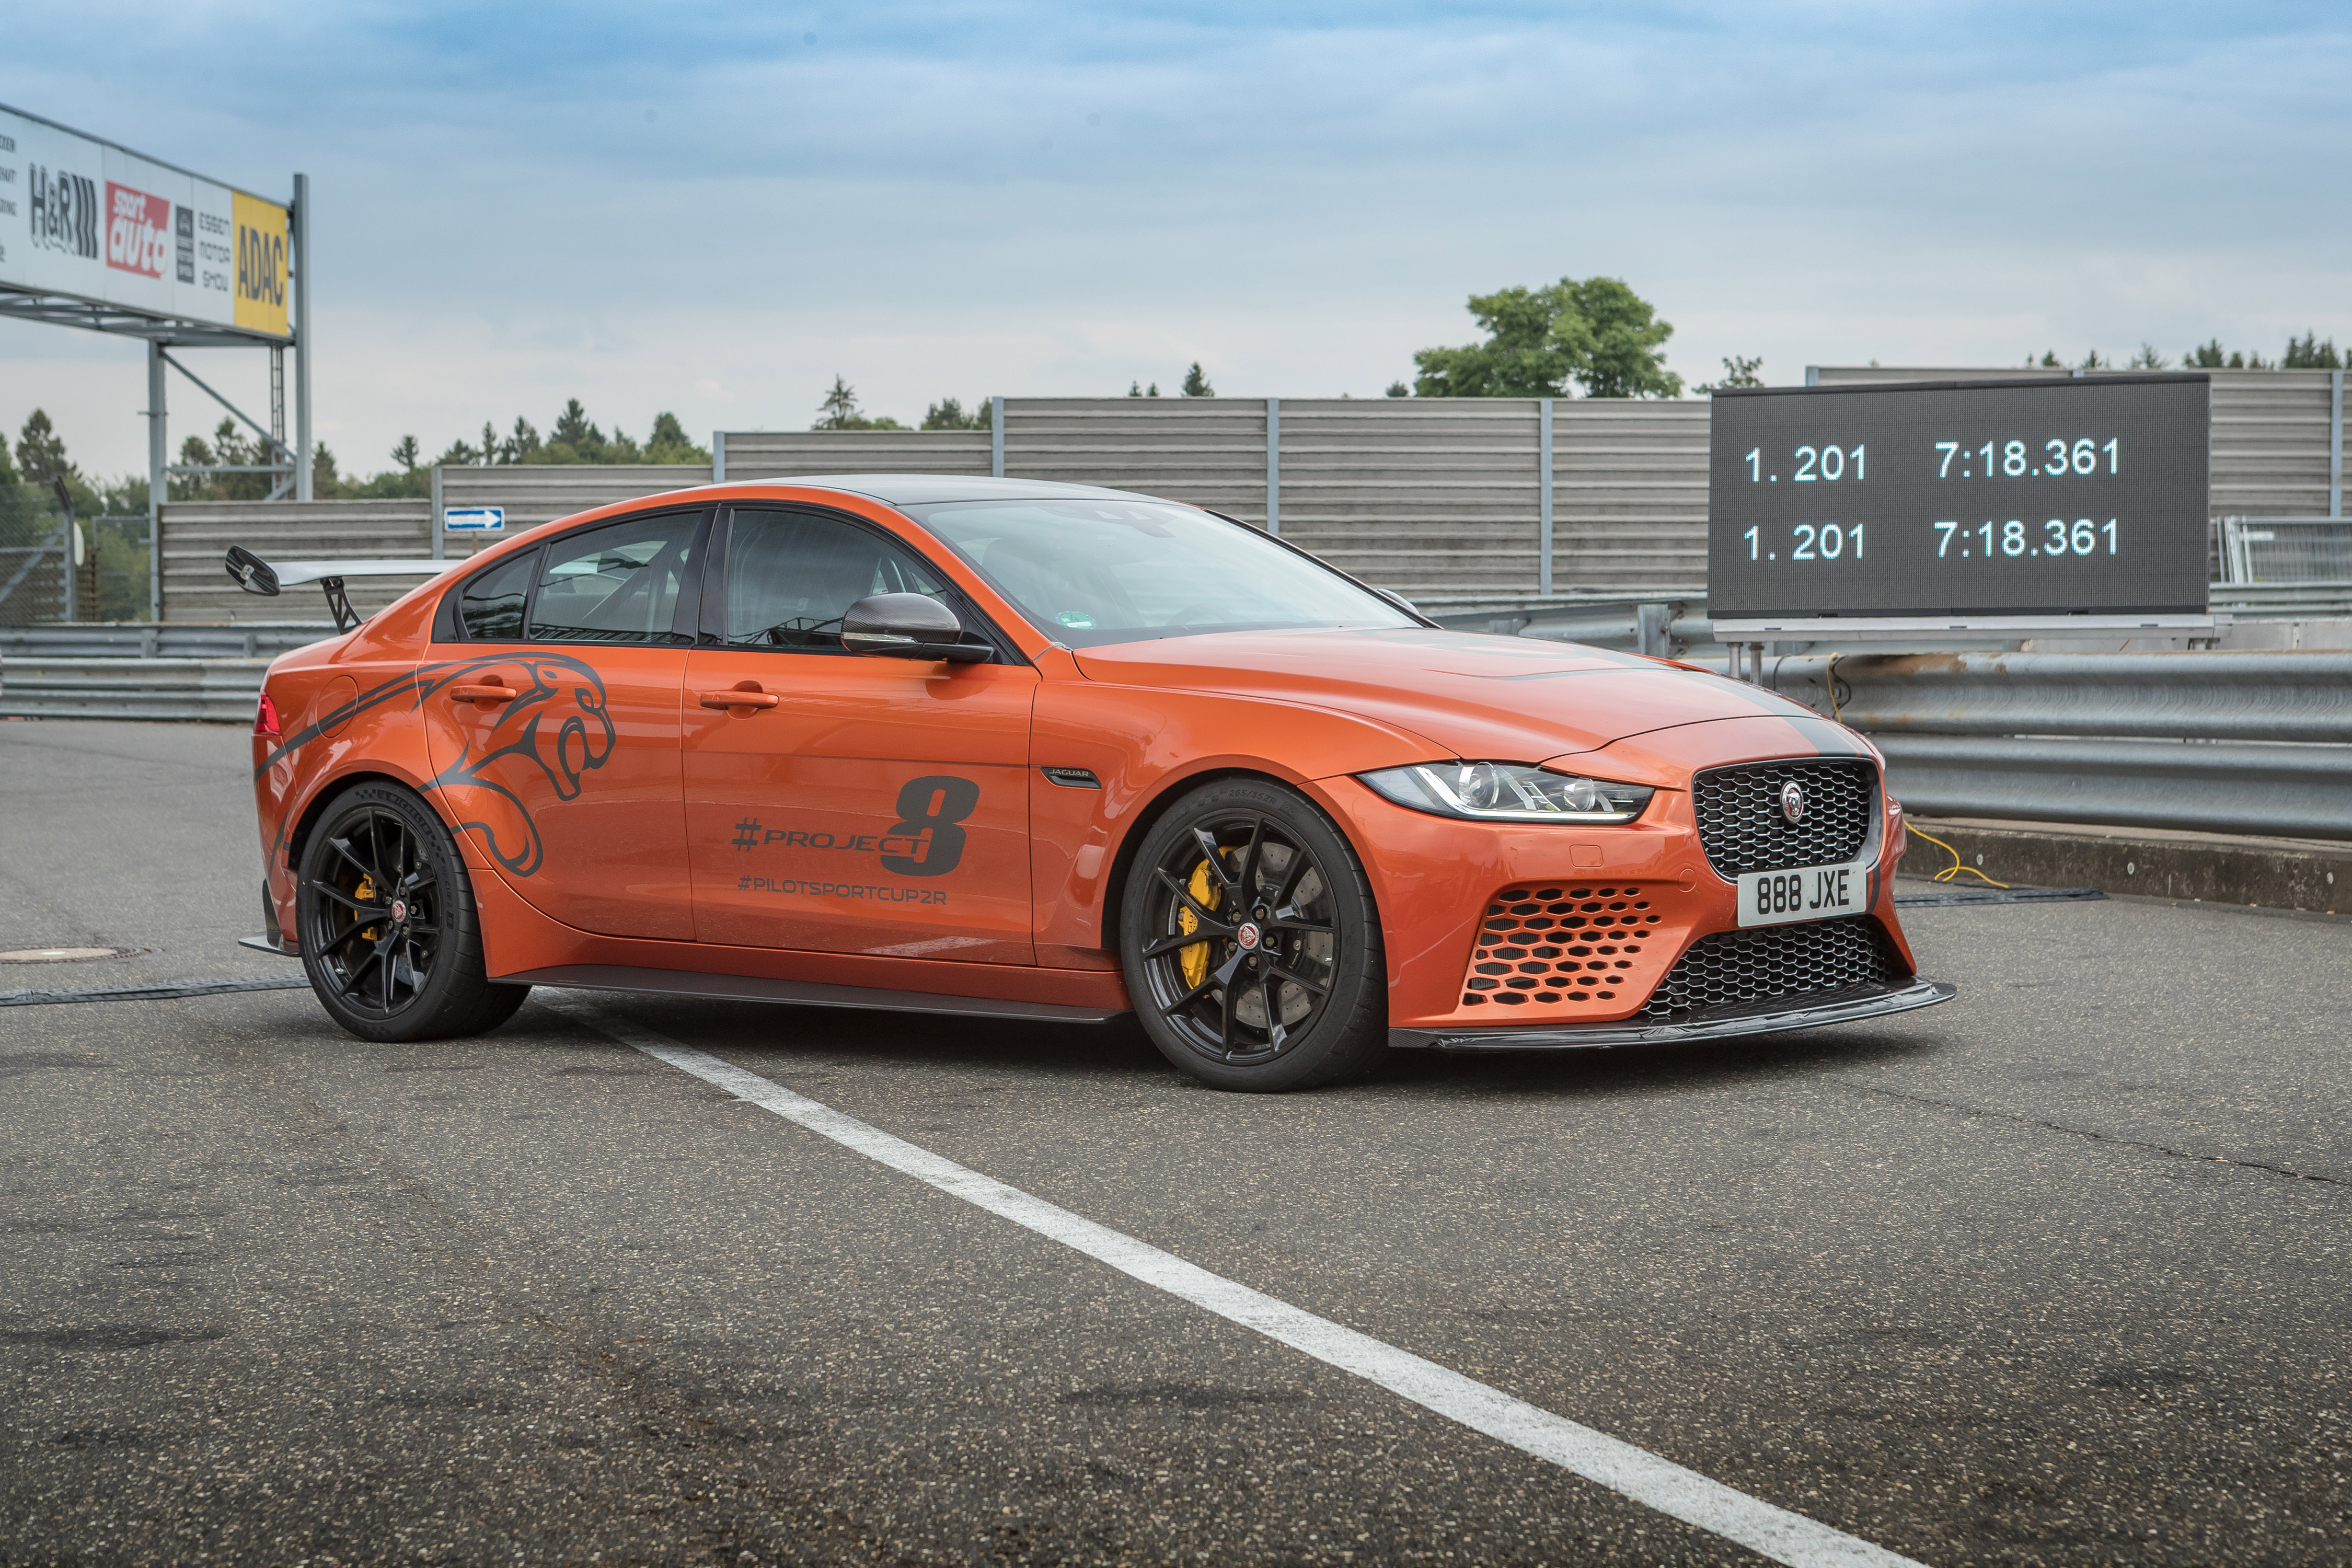 324721 j project8 19my nurburgring record 2019 240719 01 cb6568 original 1563867135